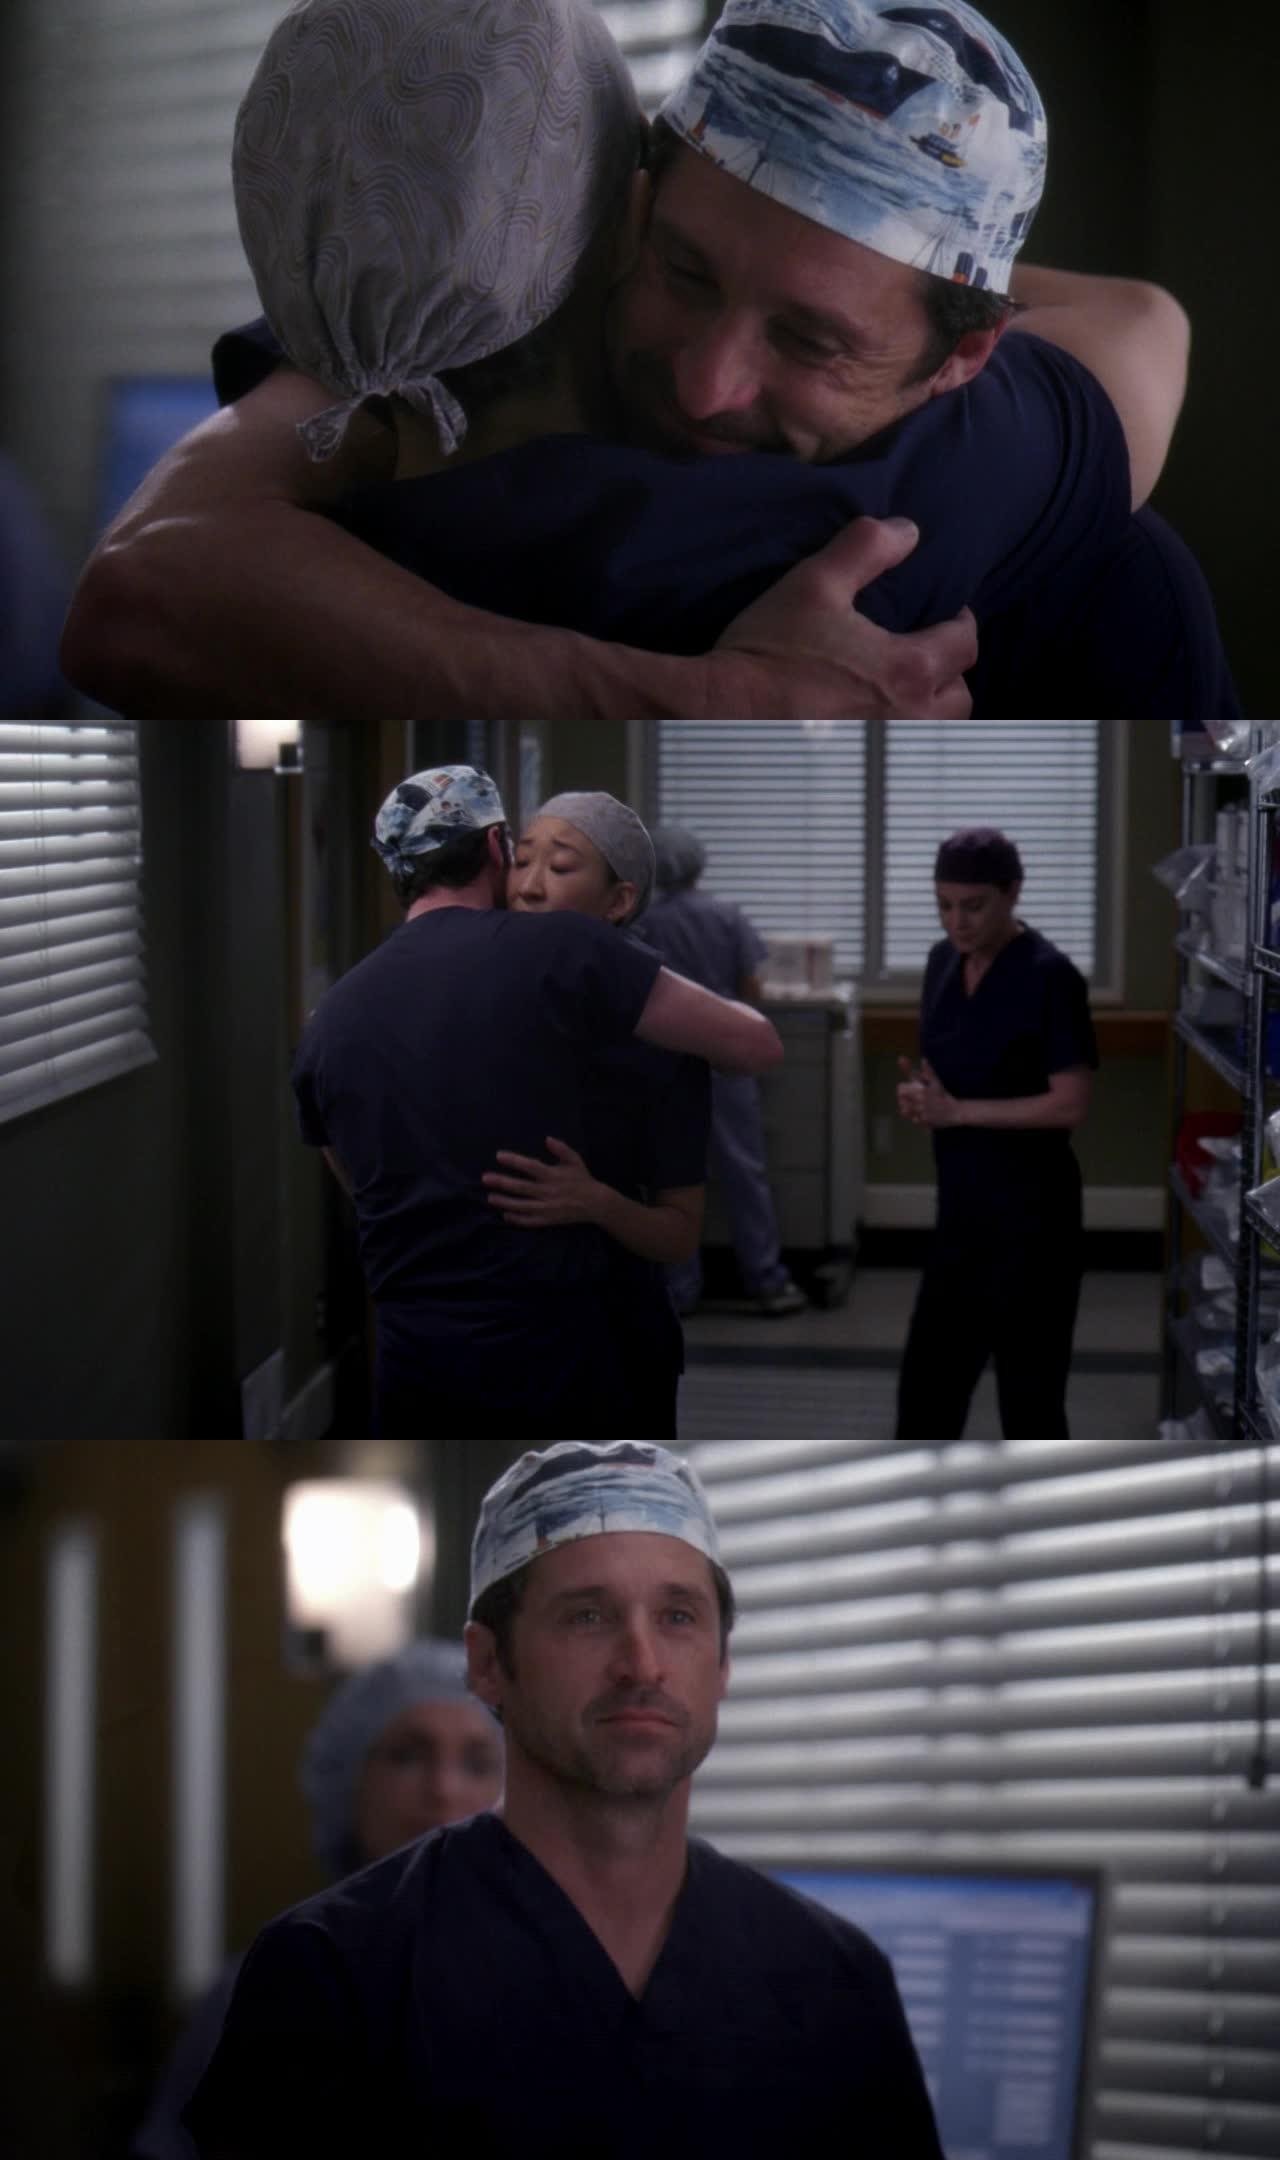 I don't know why among all the hugging, this scene with Derek was one of the most touching for me... Probably because they were never really close!